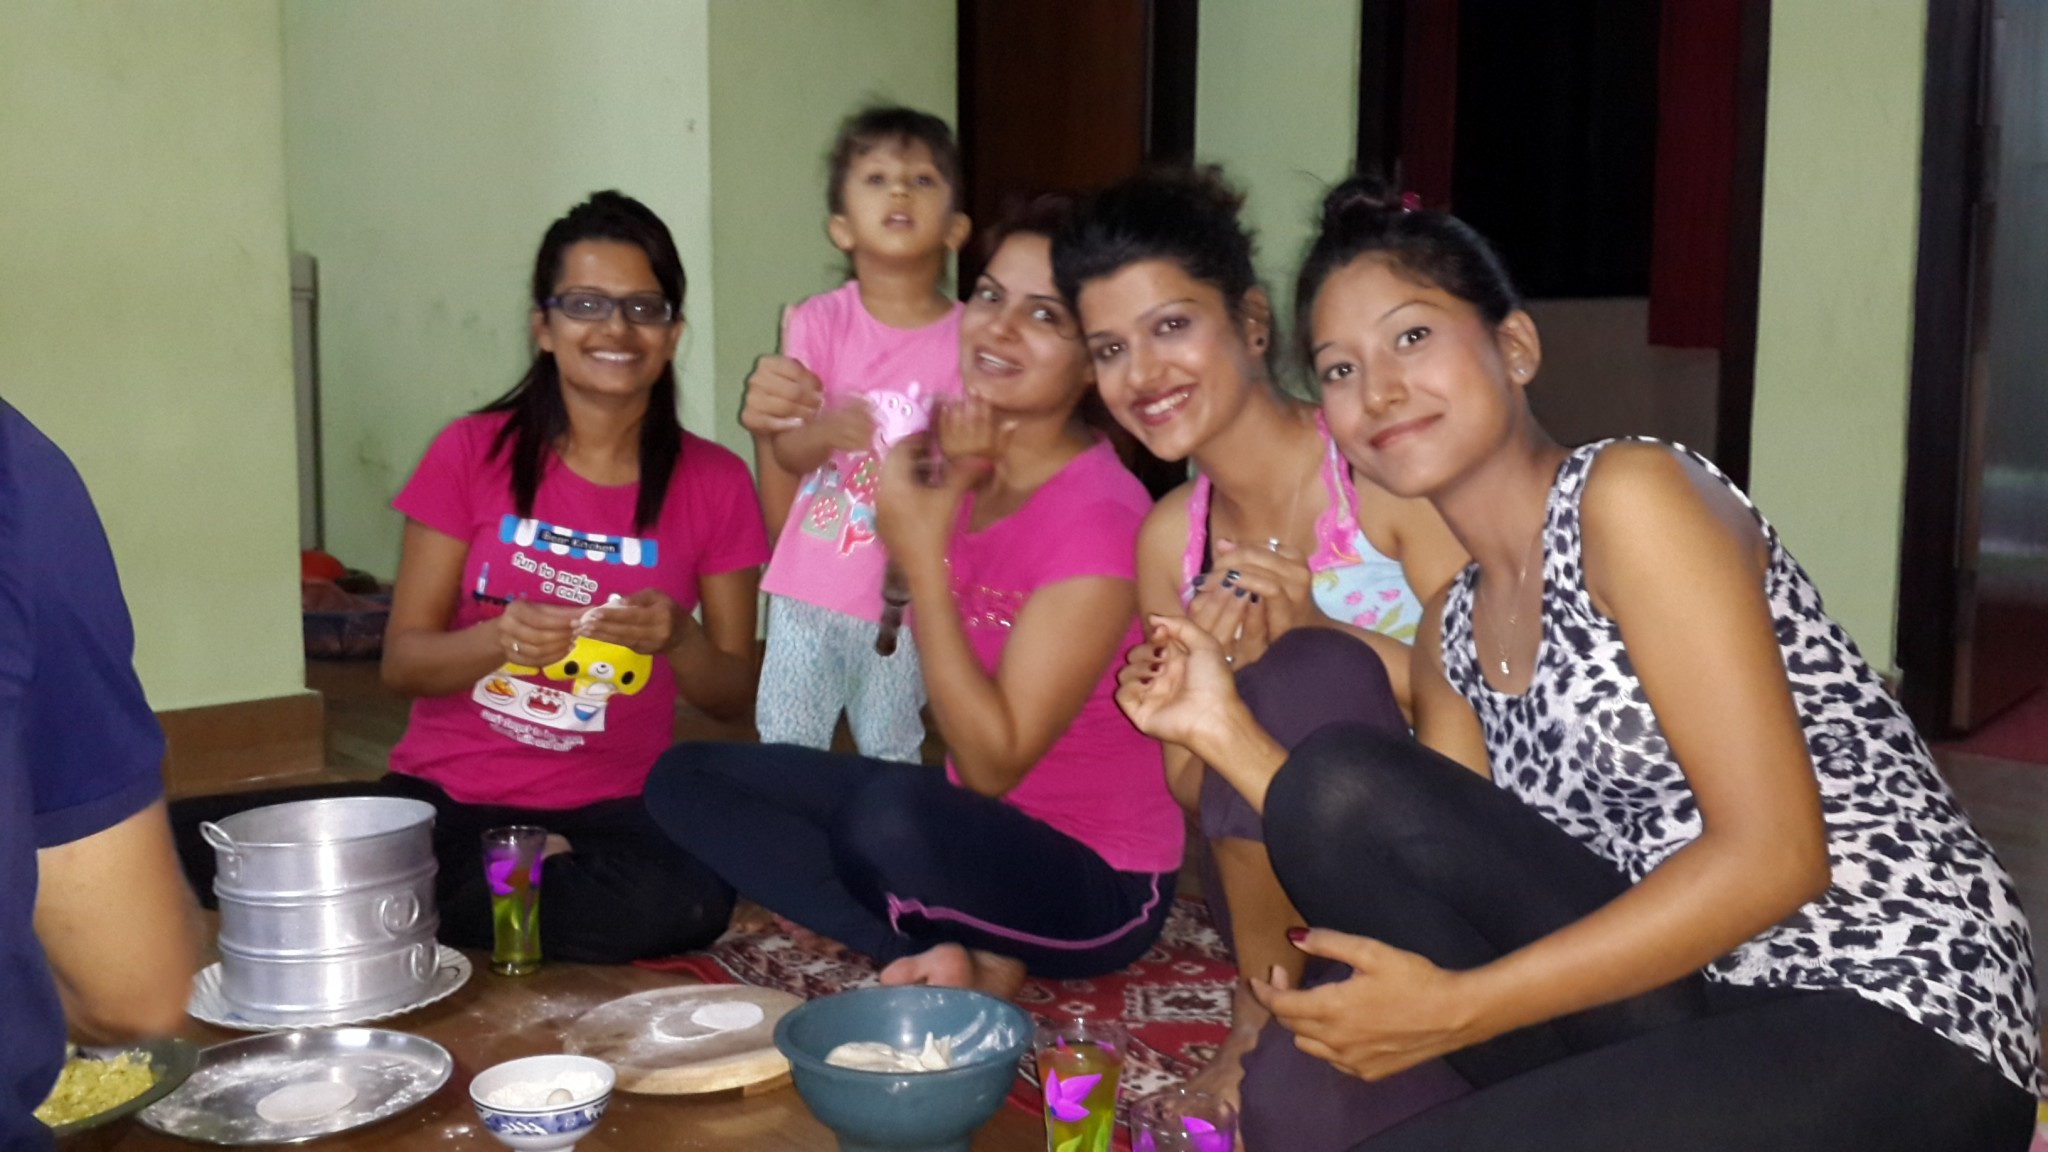 The incredibly friendly Nepali girls: Sadhana, Prasna, Shreestee and Asmita